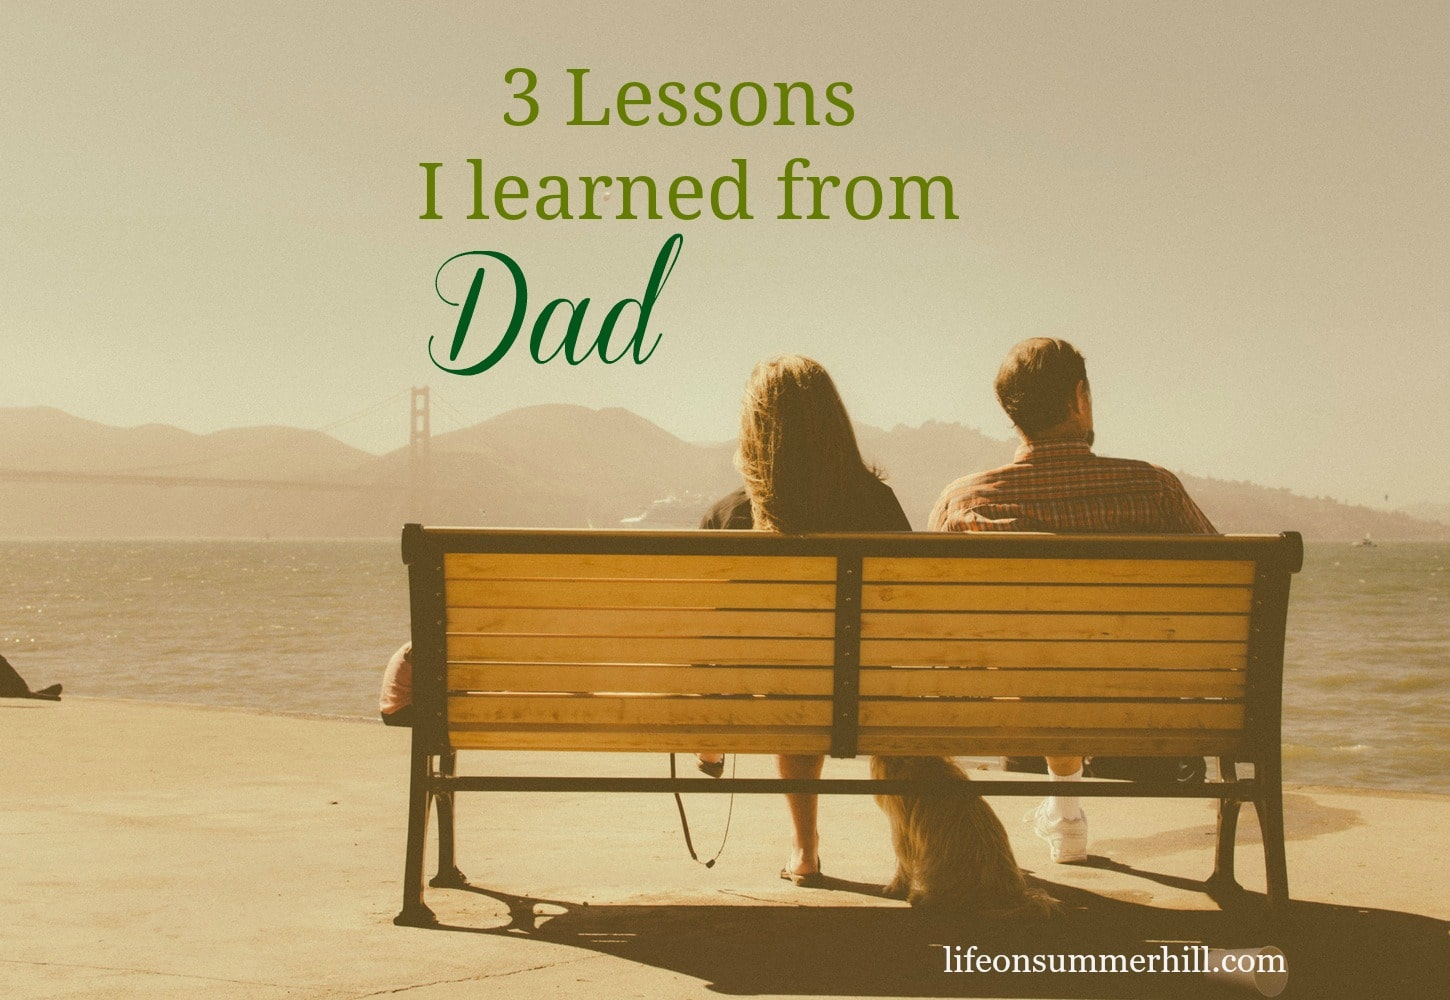 3 LESSONS I LEARNED FROM DAD